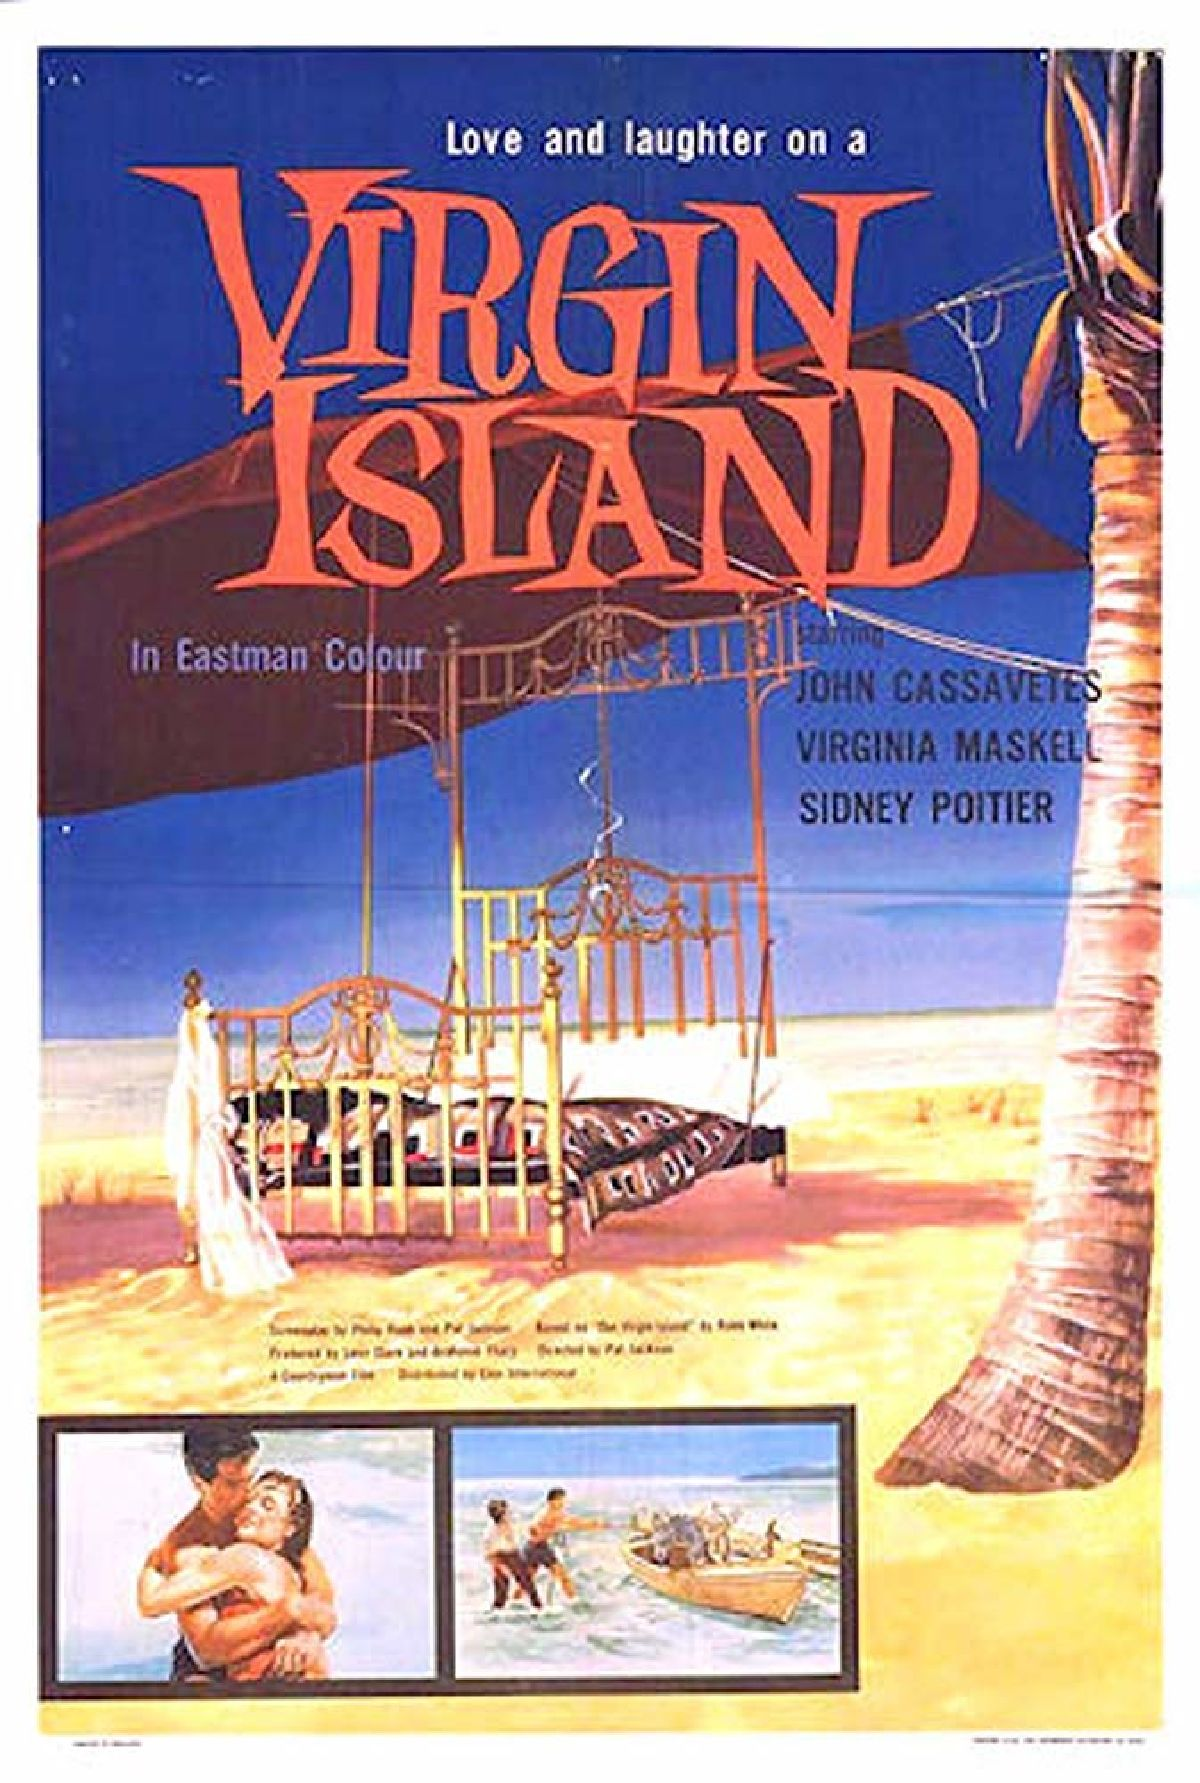 'Virgin Island' movie poster